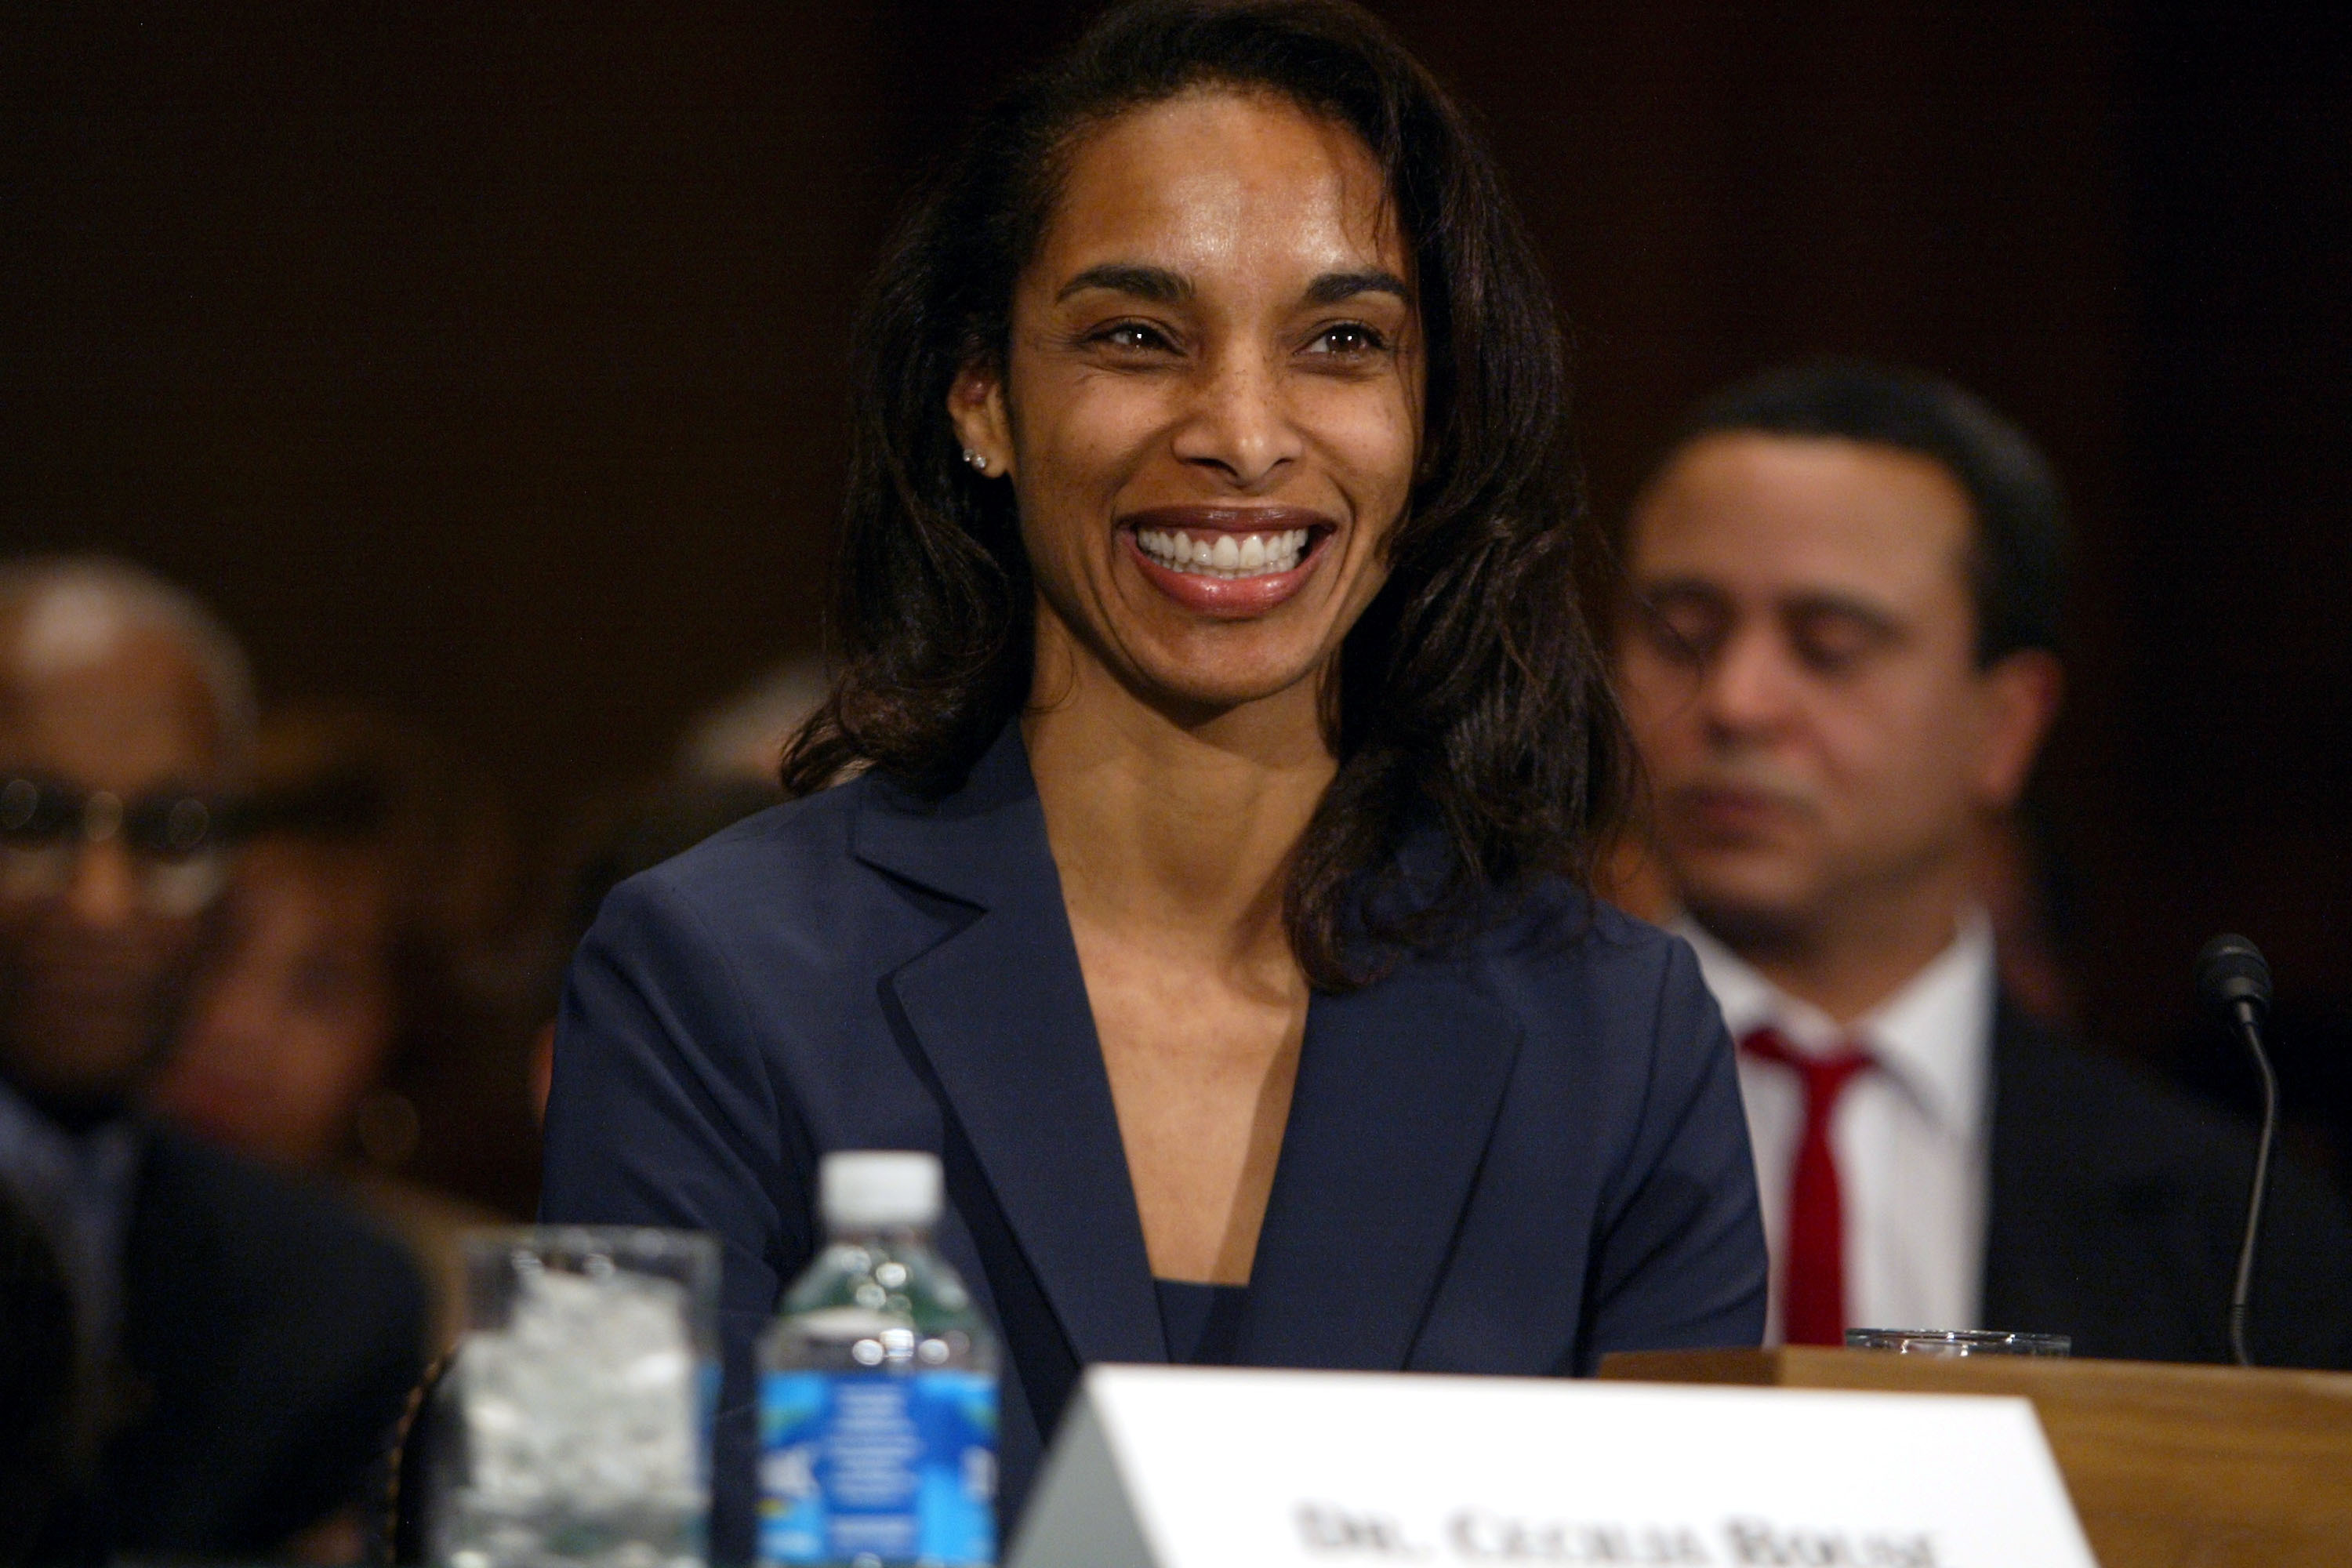 Cecilia Rouse Will Be The First Black Person To Chair The Council of Economic Advisers